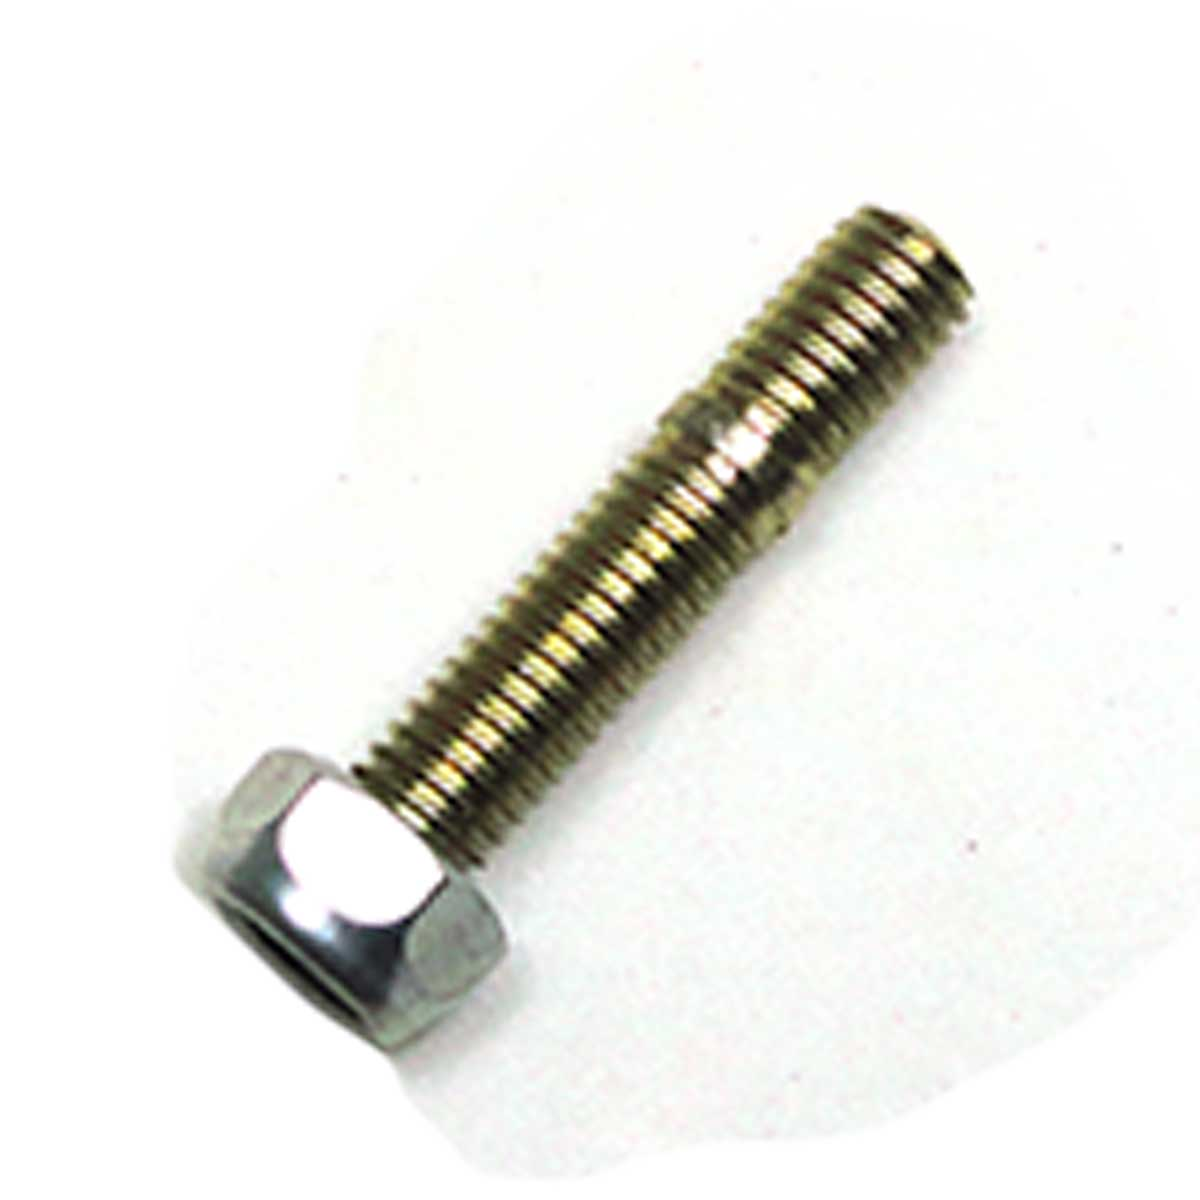 Prisioneiro Carburador Solex 2E7 GM VW 5x5x22 mm